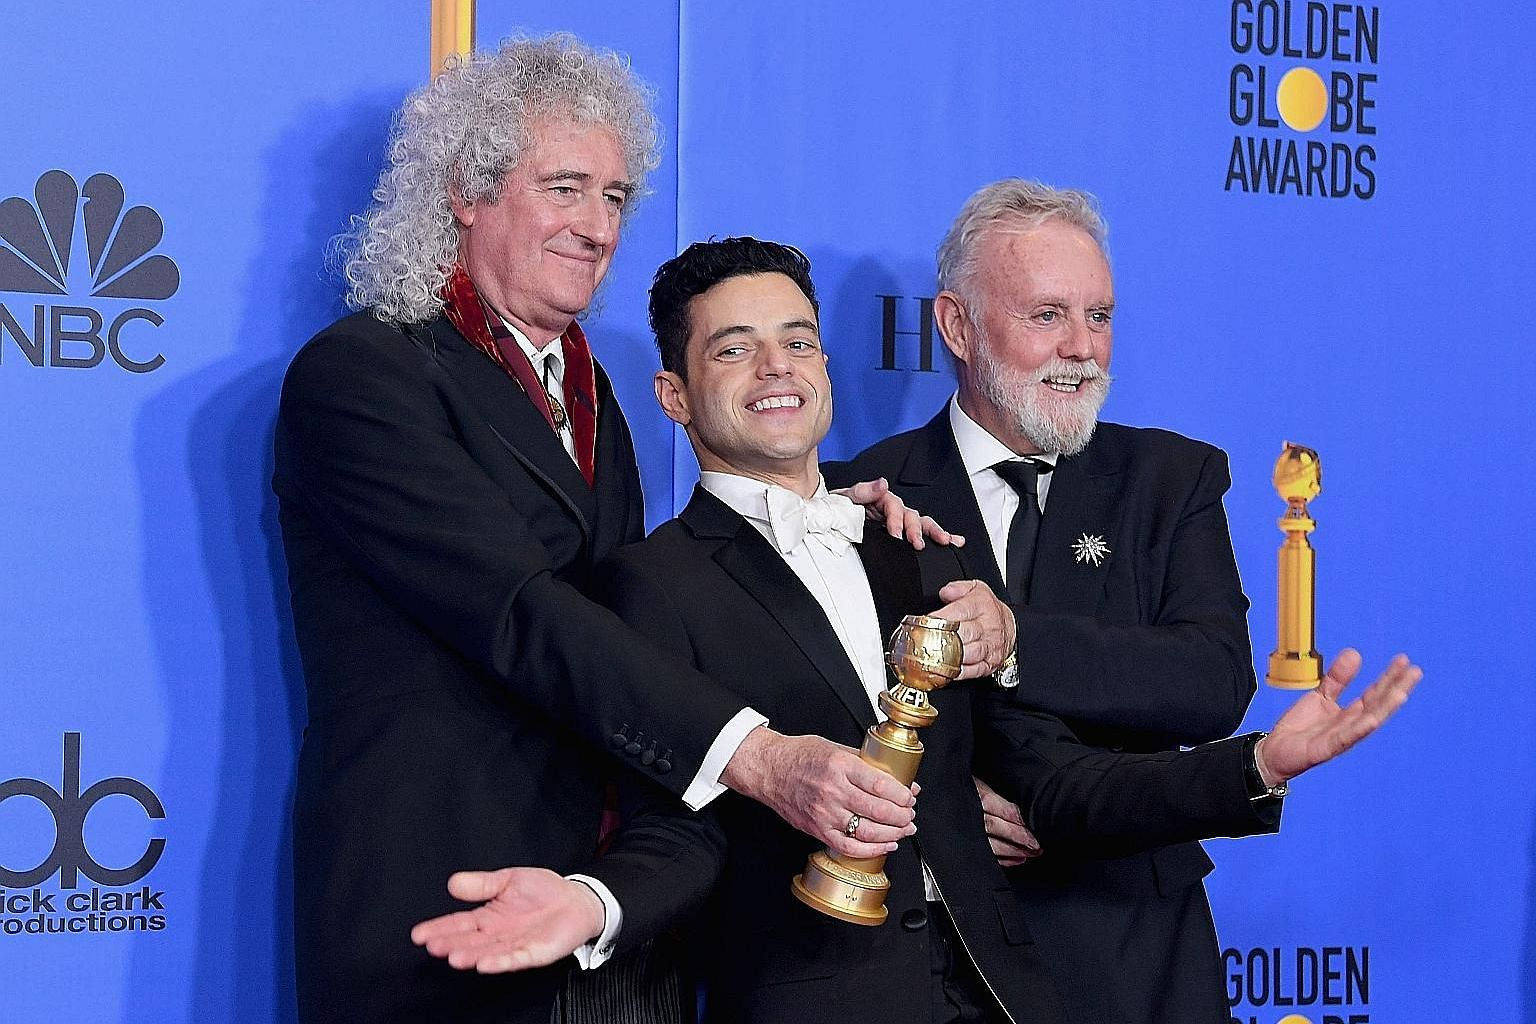 Actor Rami Malek (centre), flanked by Queen's Brian May and Roger Taylor, was crowned best actor in a movie (drama) for his role as the band's frontman Freddie Mercury in Bohemian Rhapsody.